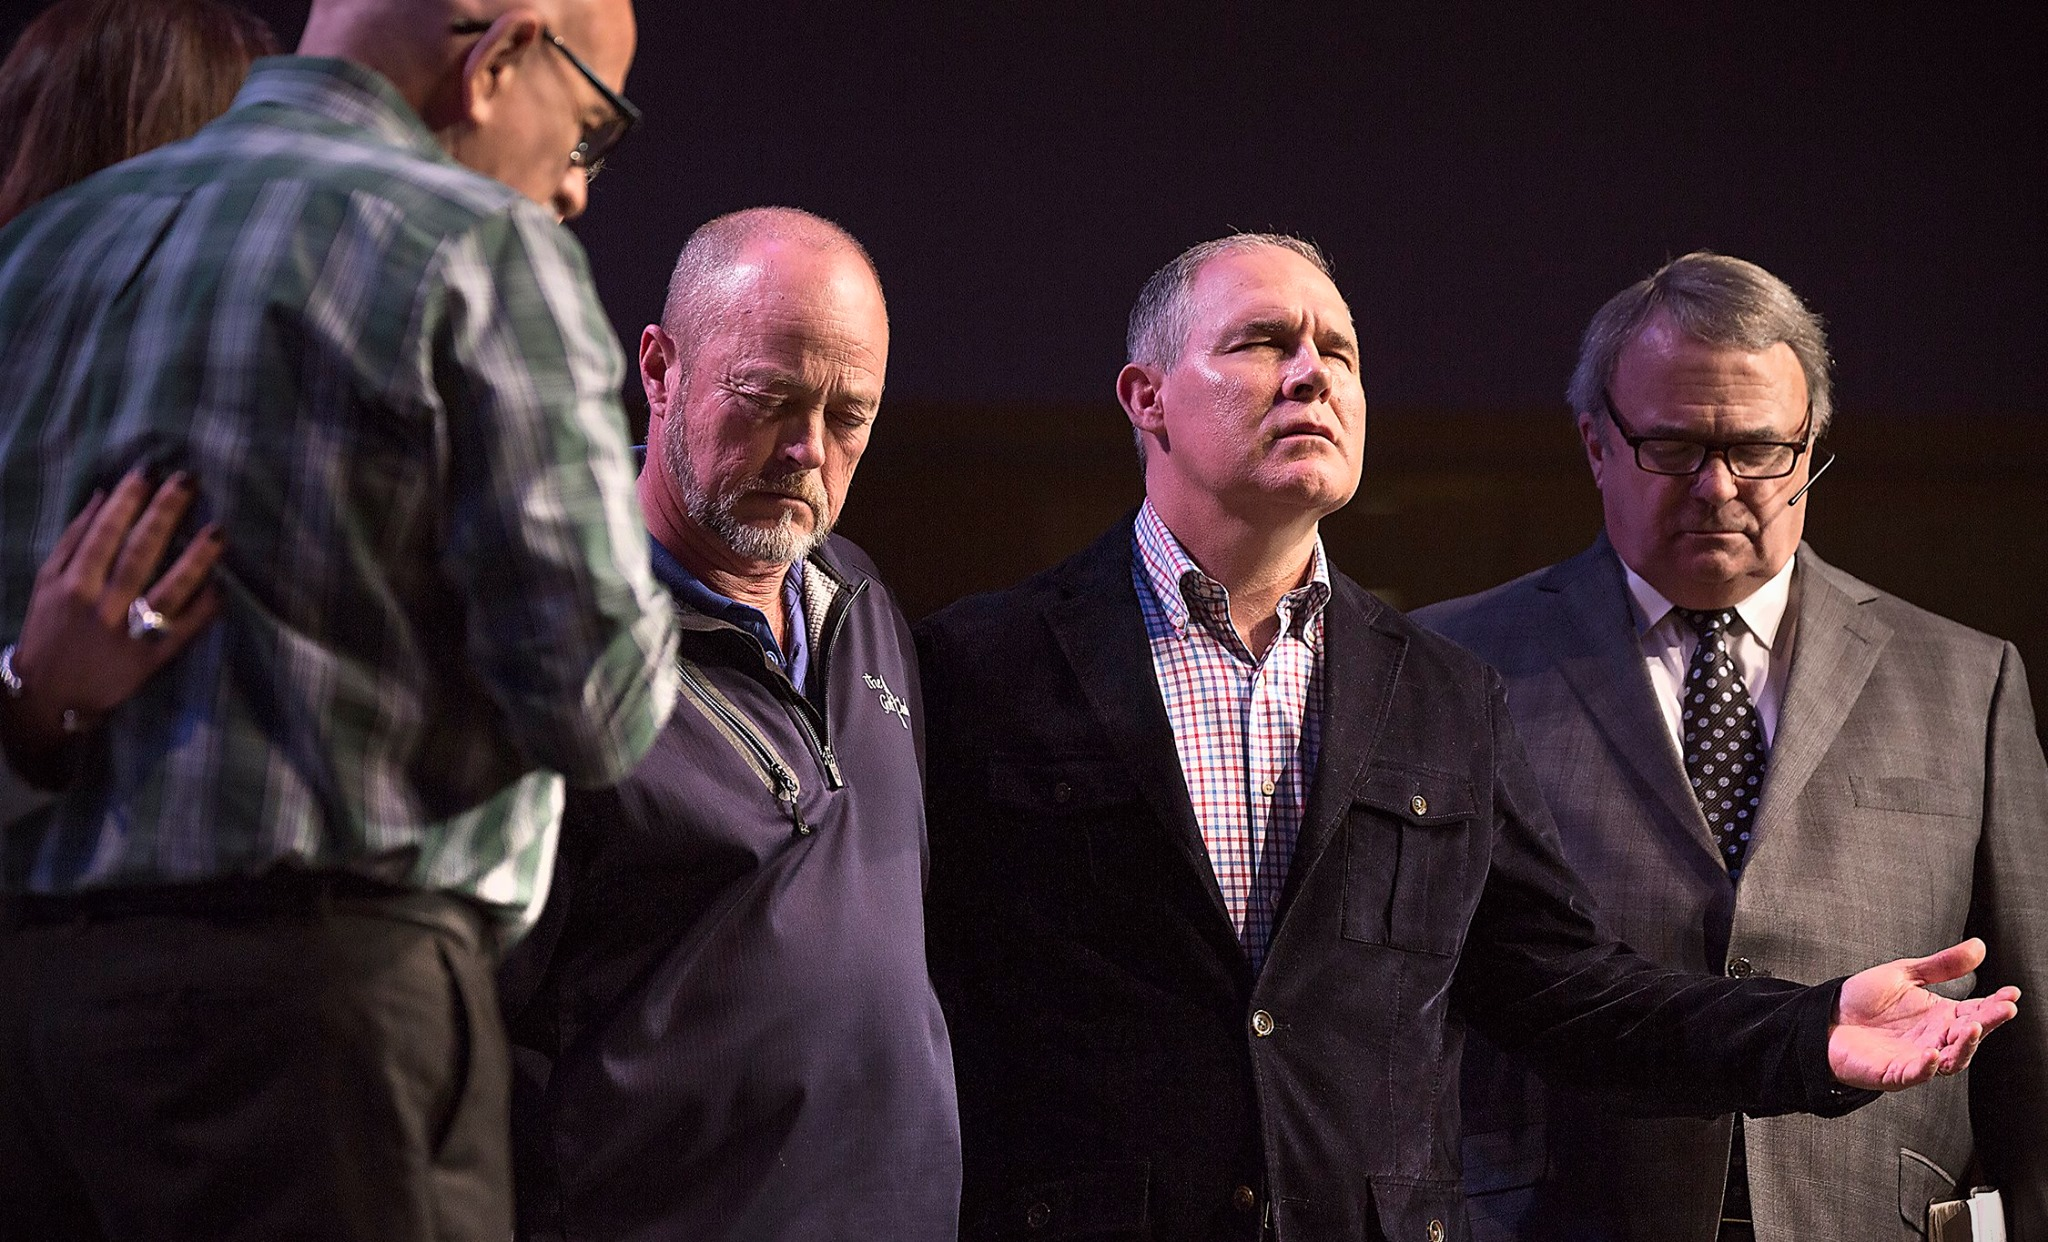 Scott Pruitt prays with members of his church before heading to Washington, DC to run the EPA. His long-time pastor, Nick Garland, is far right. Photo:First Baptist Church Broken Arrow / facebook